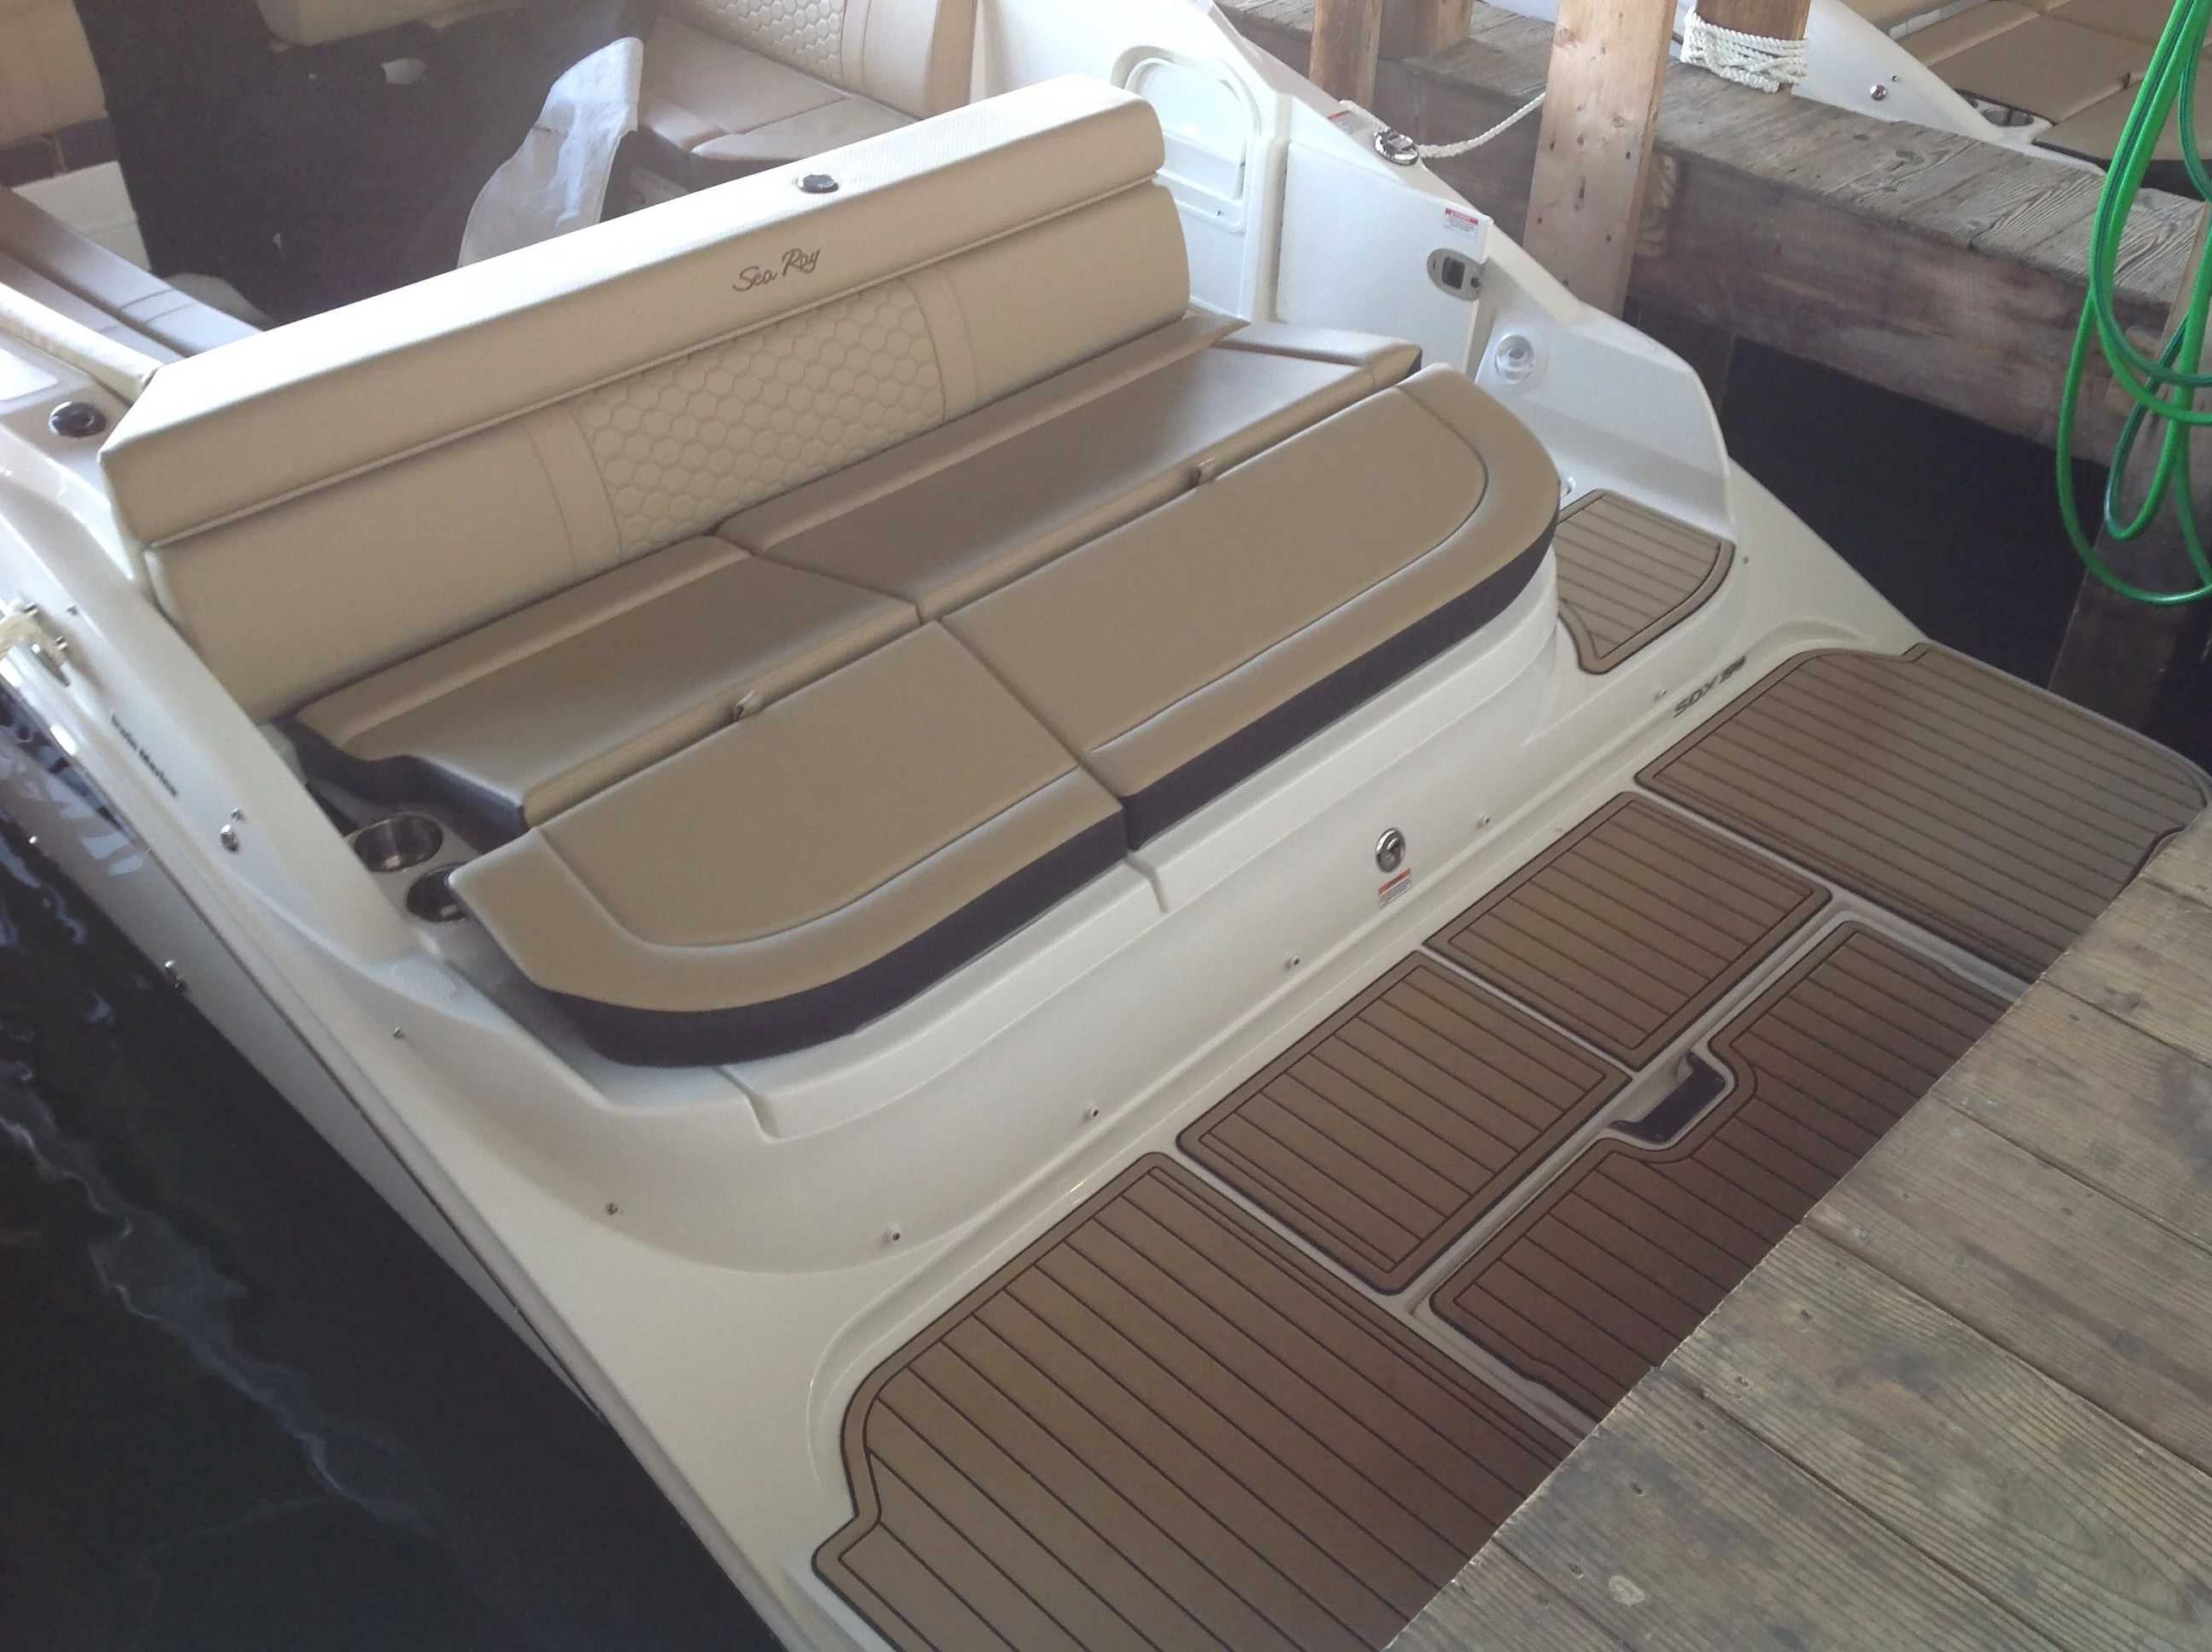 2021 Sea Ray boat for sale, model of the boat is 270 SDX & Image # 15 of 15